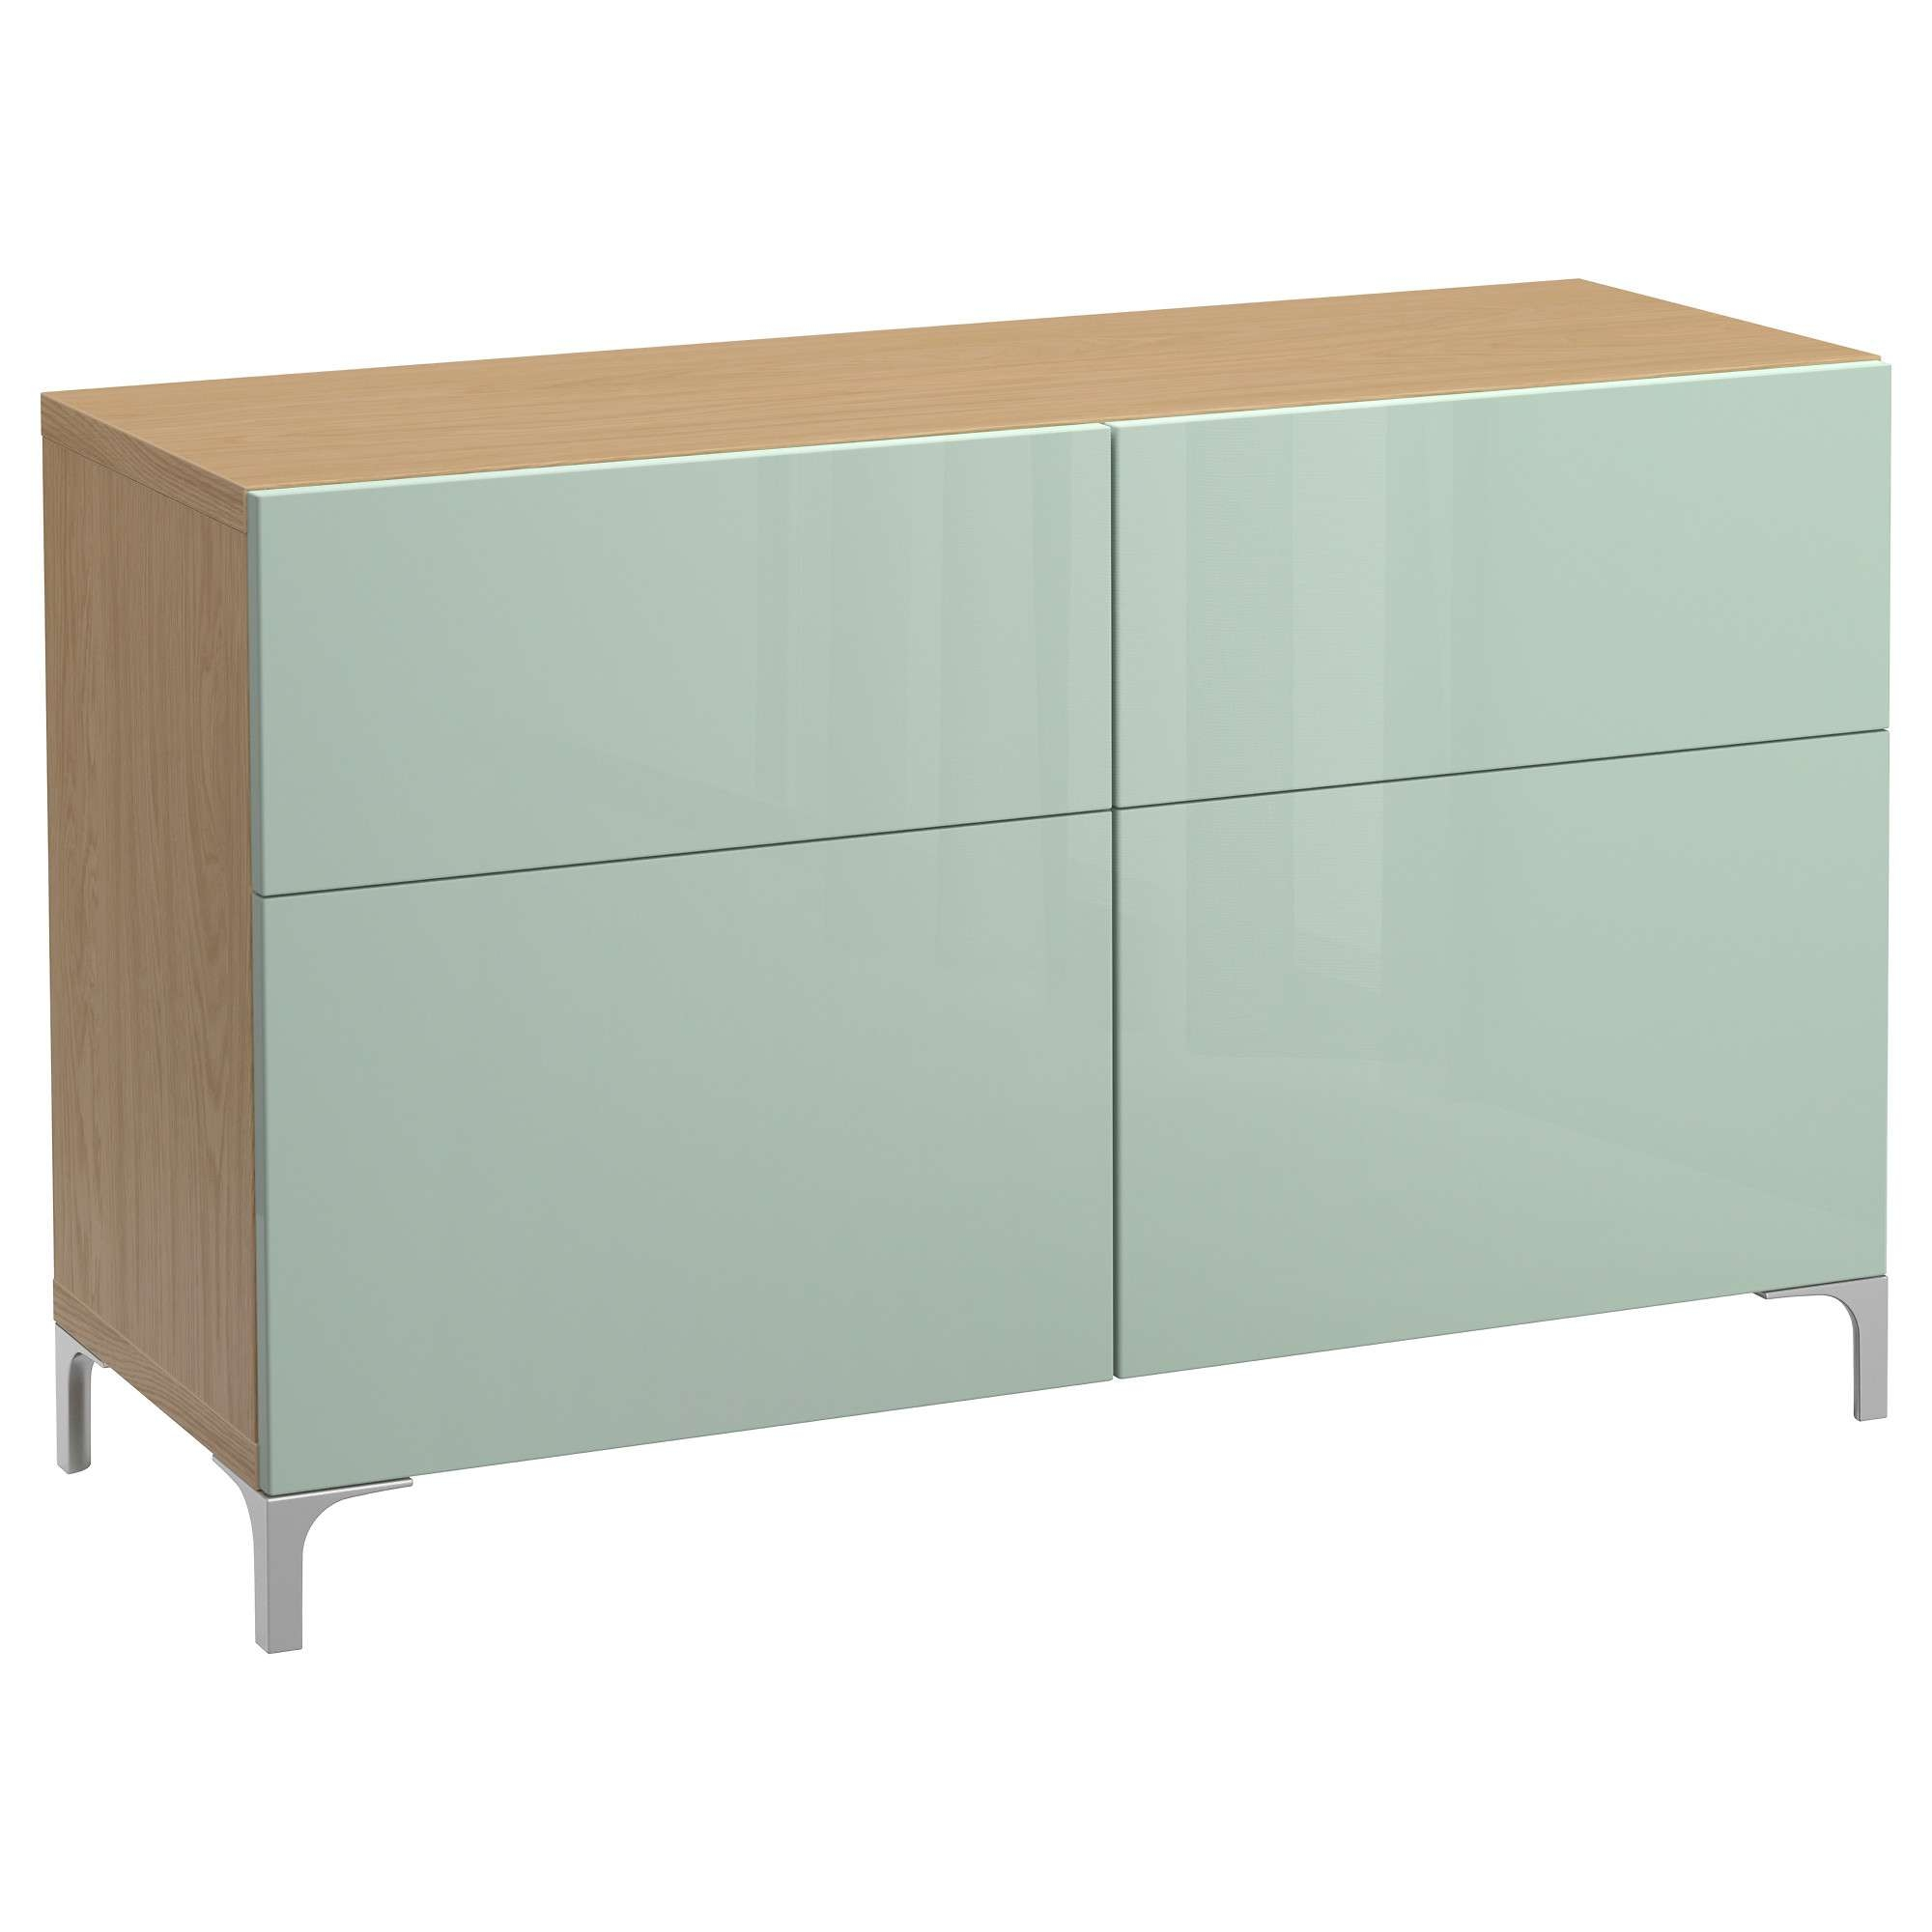 Occasional Tables & Hall Table | Ikea For Ikea Sideboards (View 13 of 20)